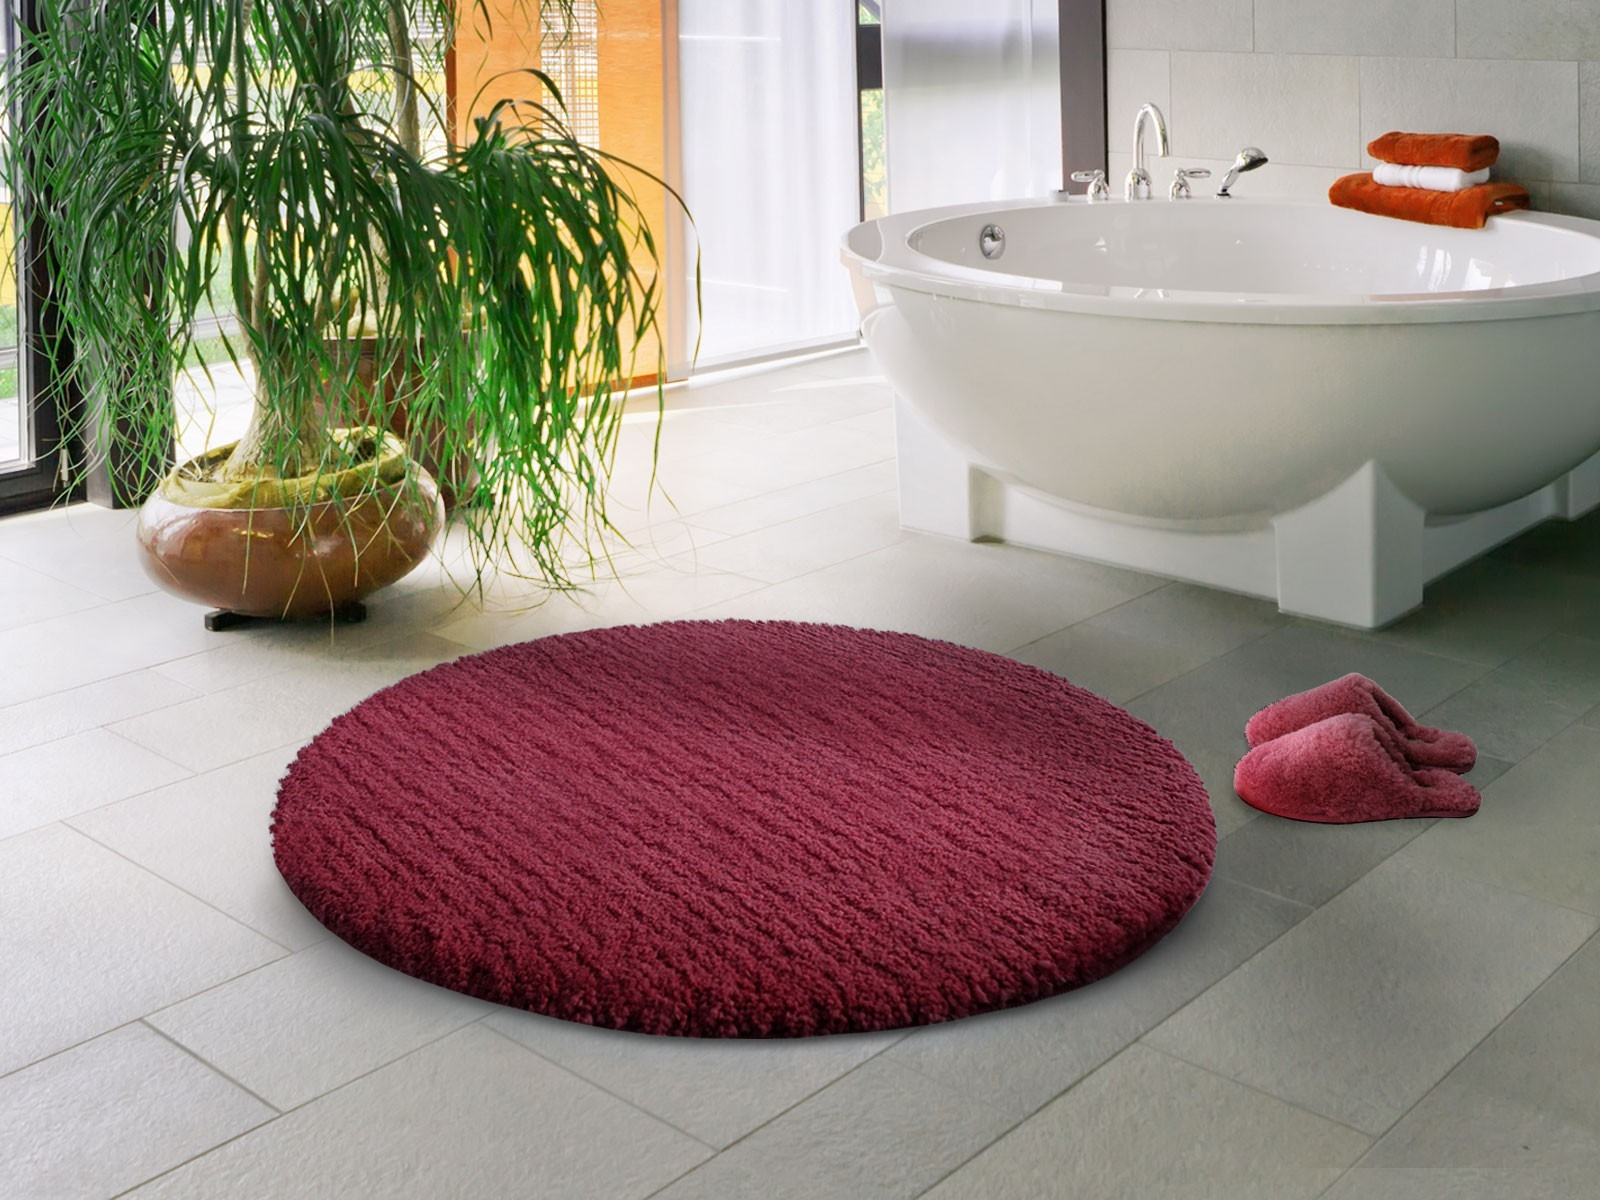 Round Bath Rugs Redred bathroom rugs and mats bathroom trends 2017 2018